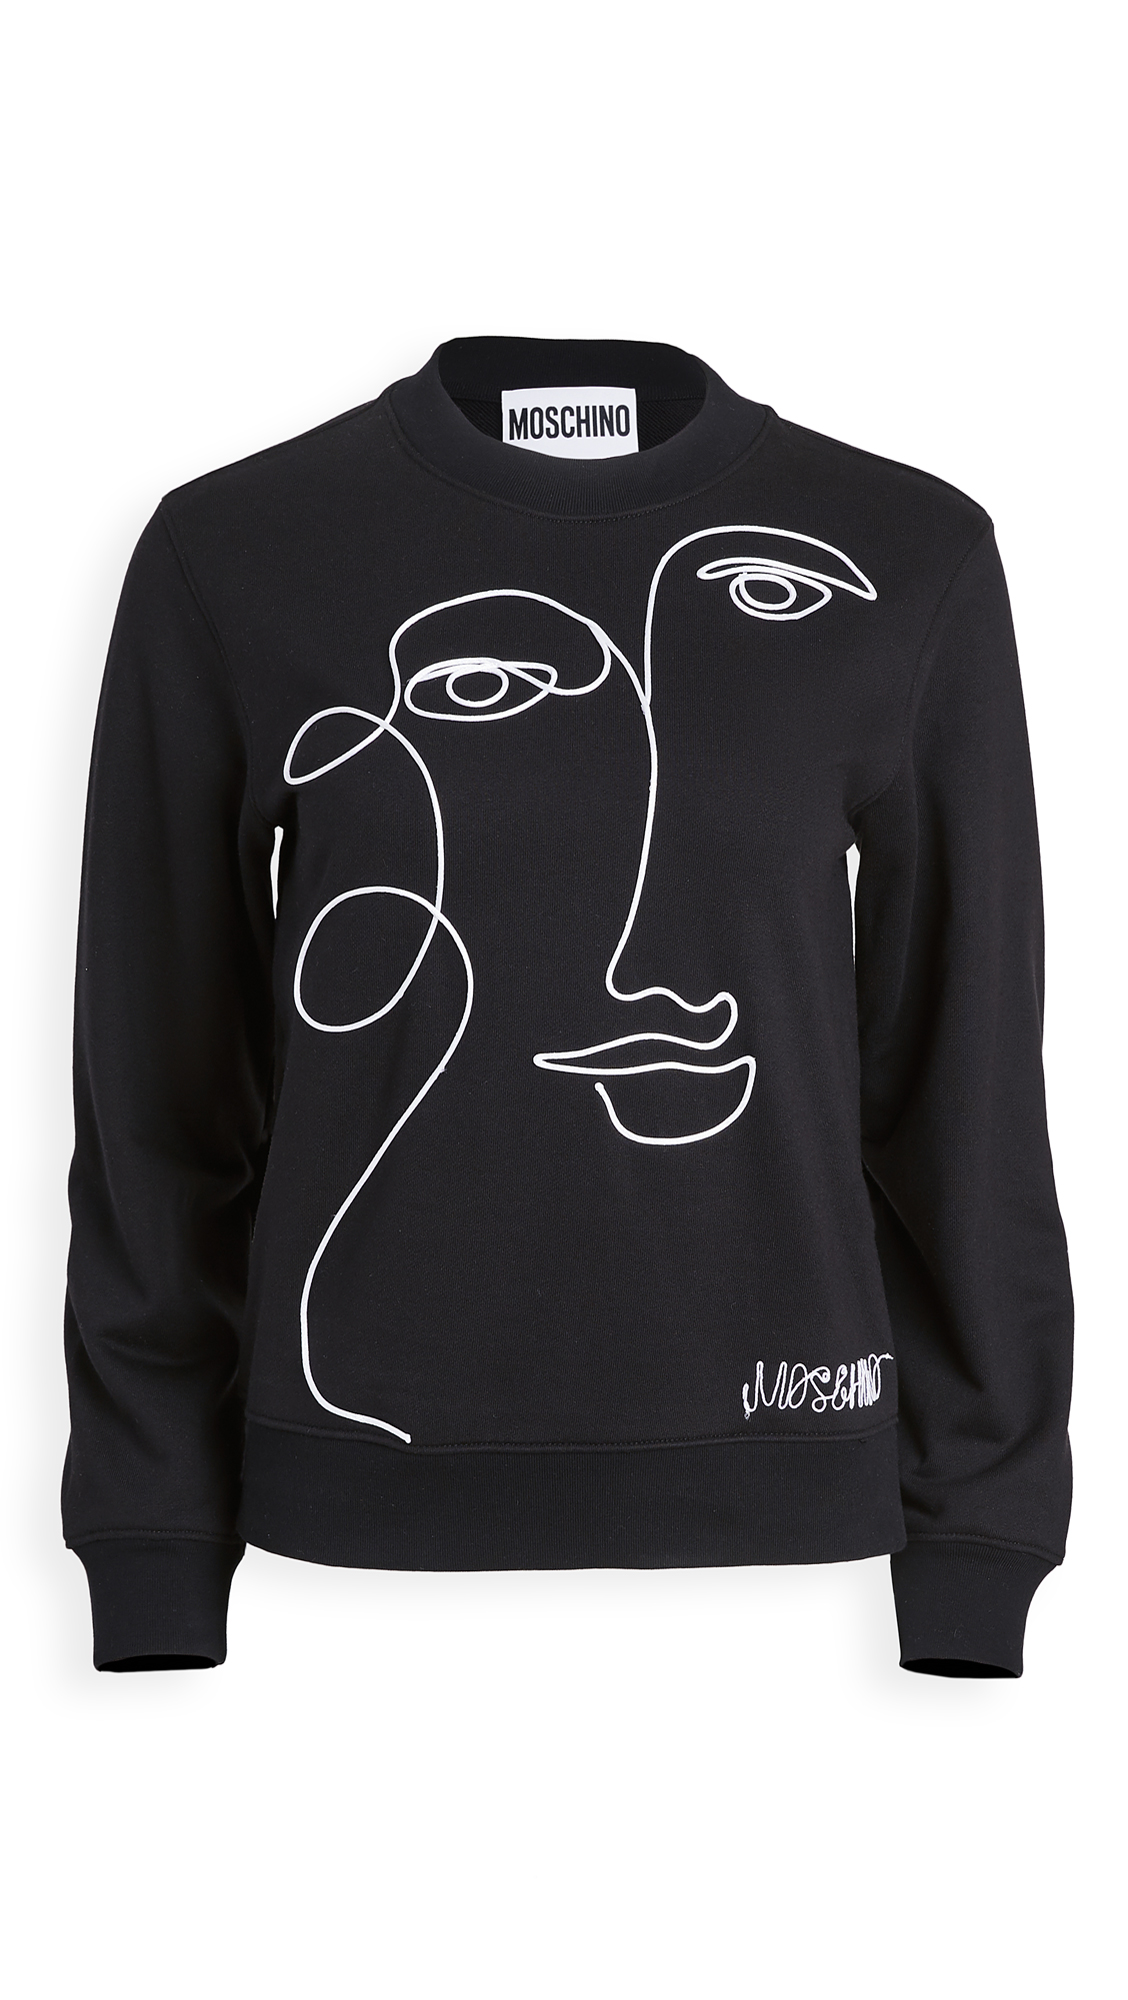 Moschino Artwork Sweatshirt – 40% Off Sale